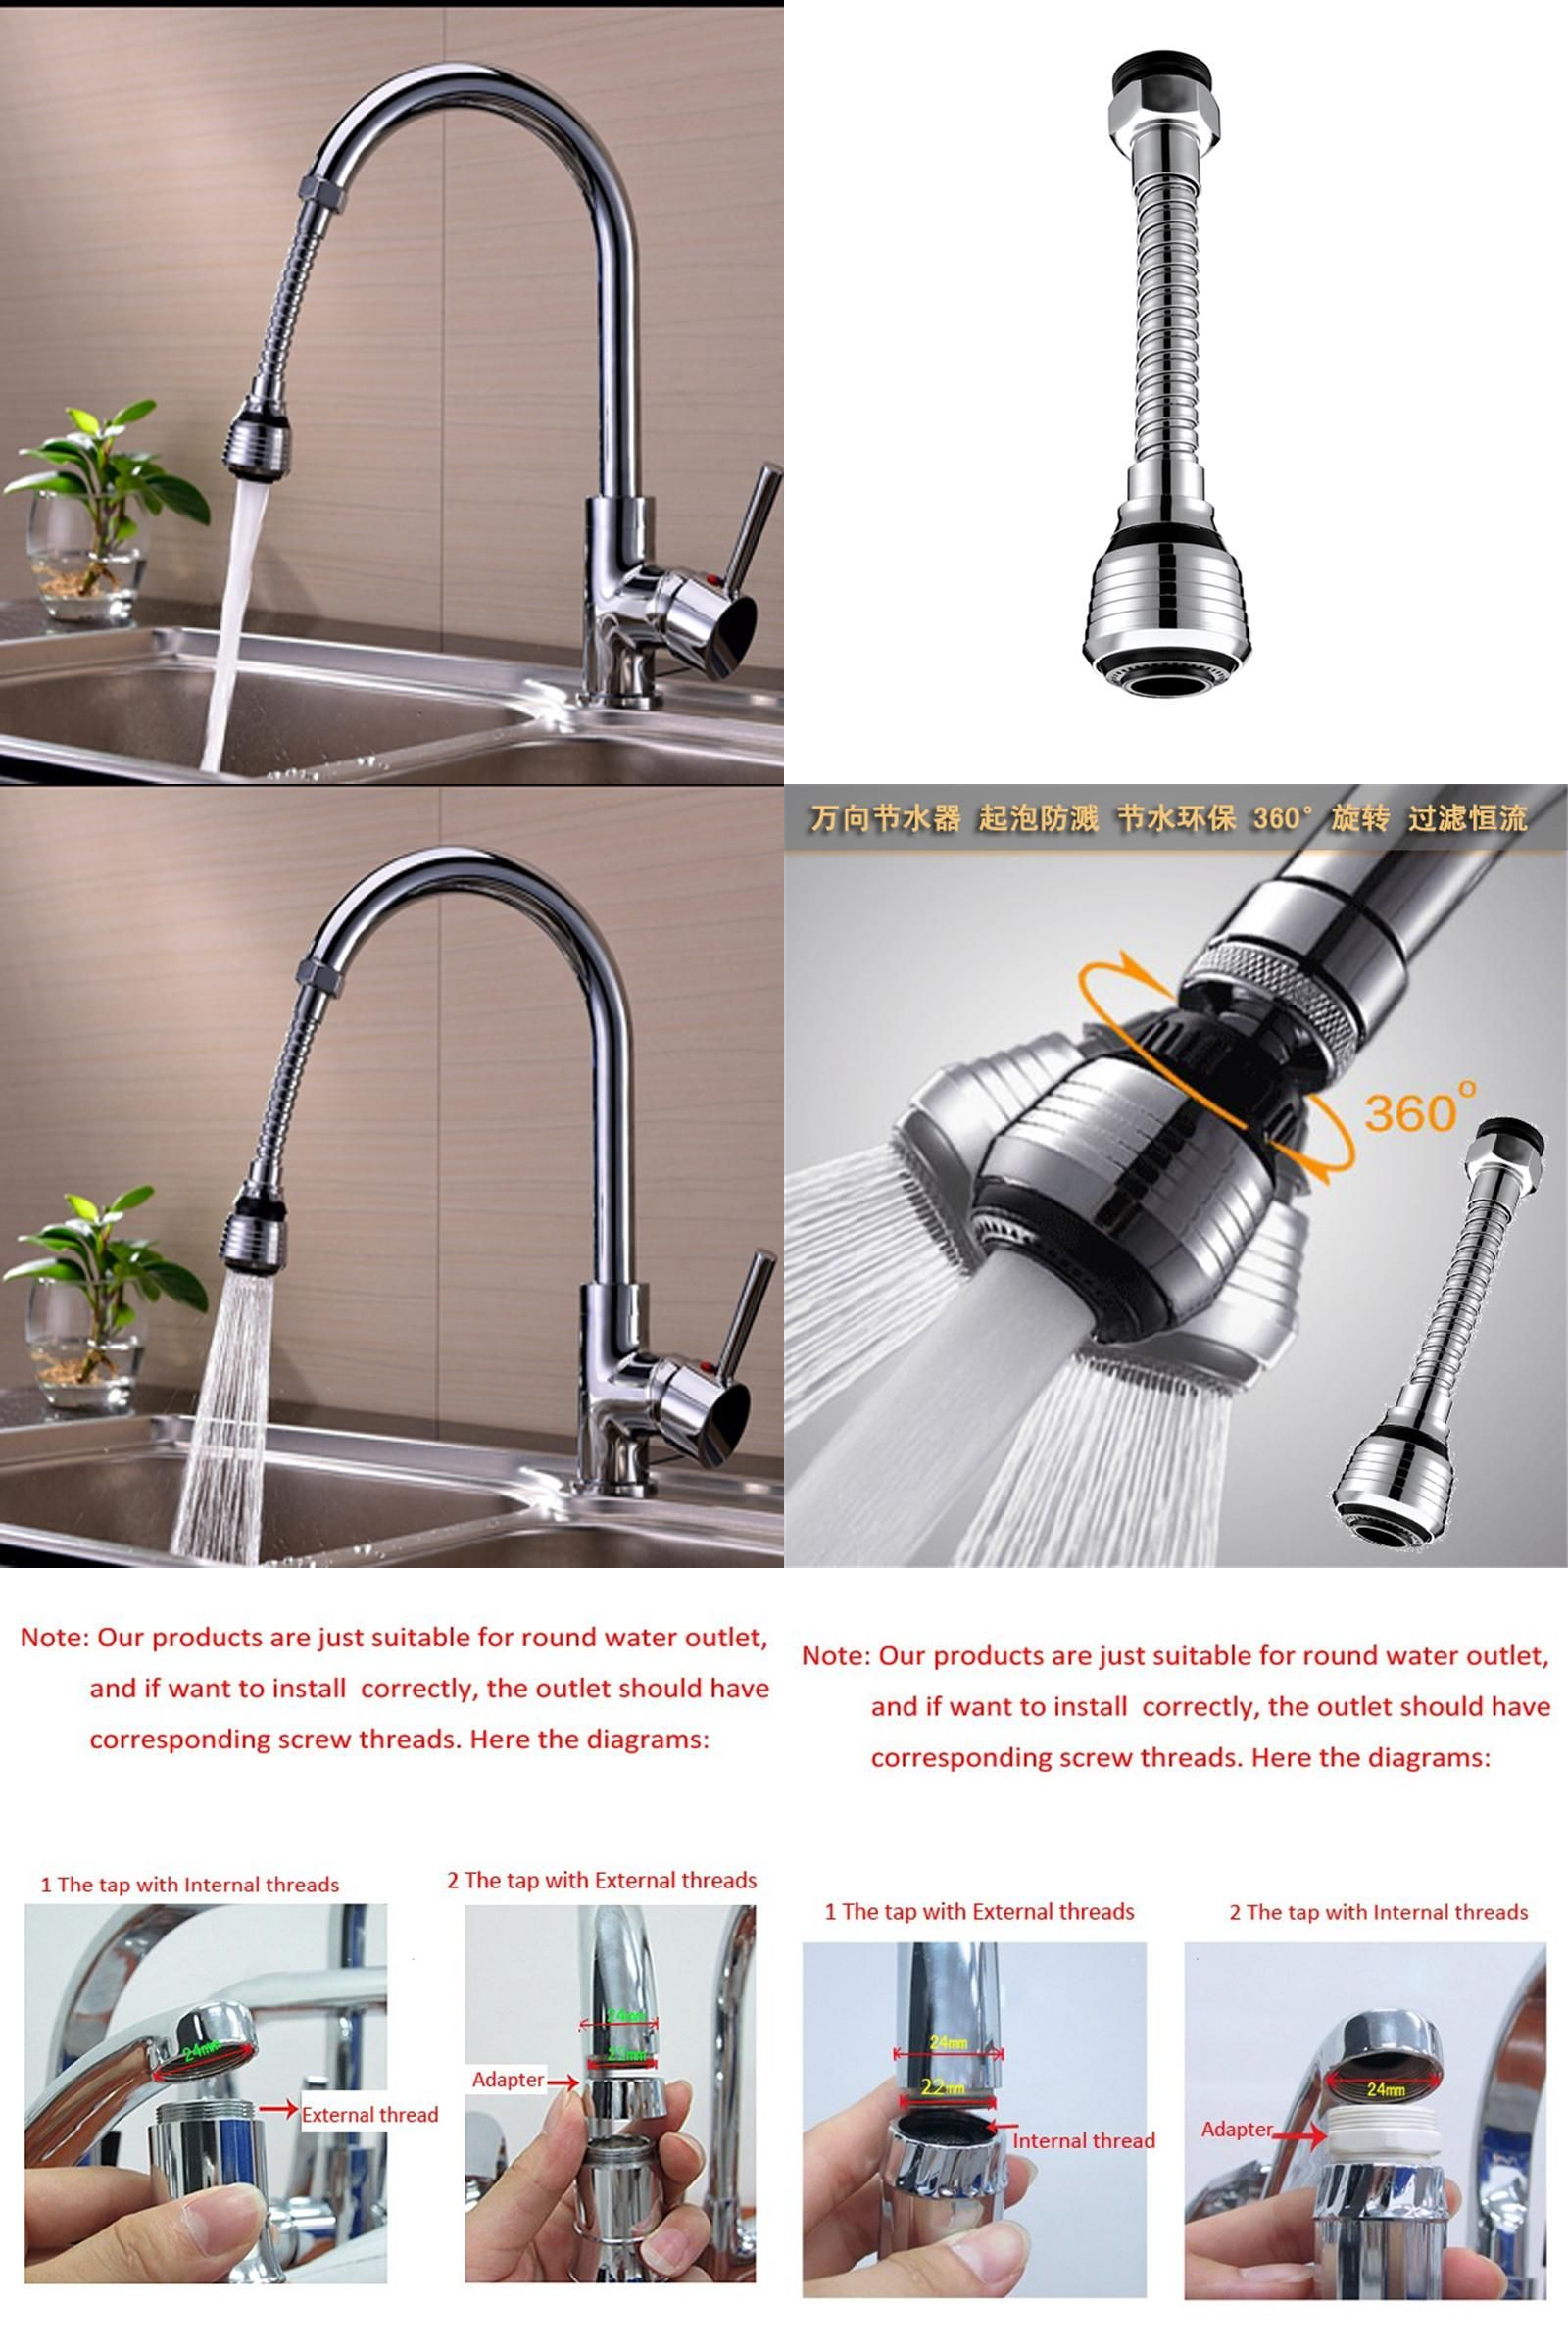 Visit To Buy Faucet Aerator Sprayer Water Saving Device For Home Hotel Eco Friendly Two Modes Shower Head Pre Water Saving Devices Faucet Aerators Save Water